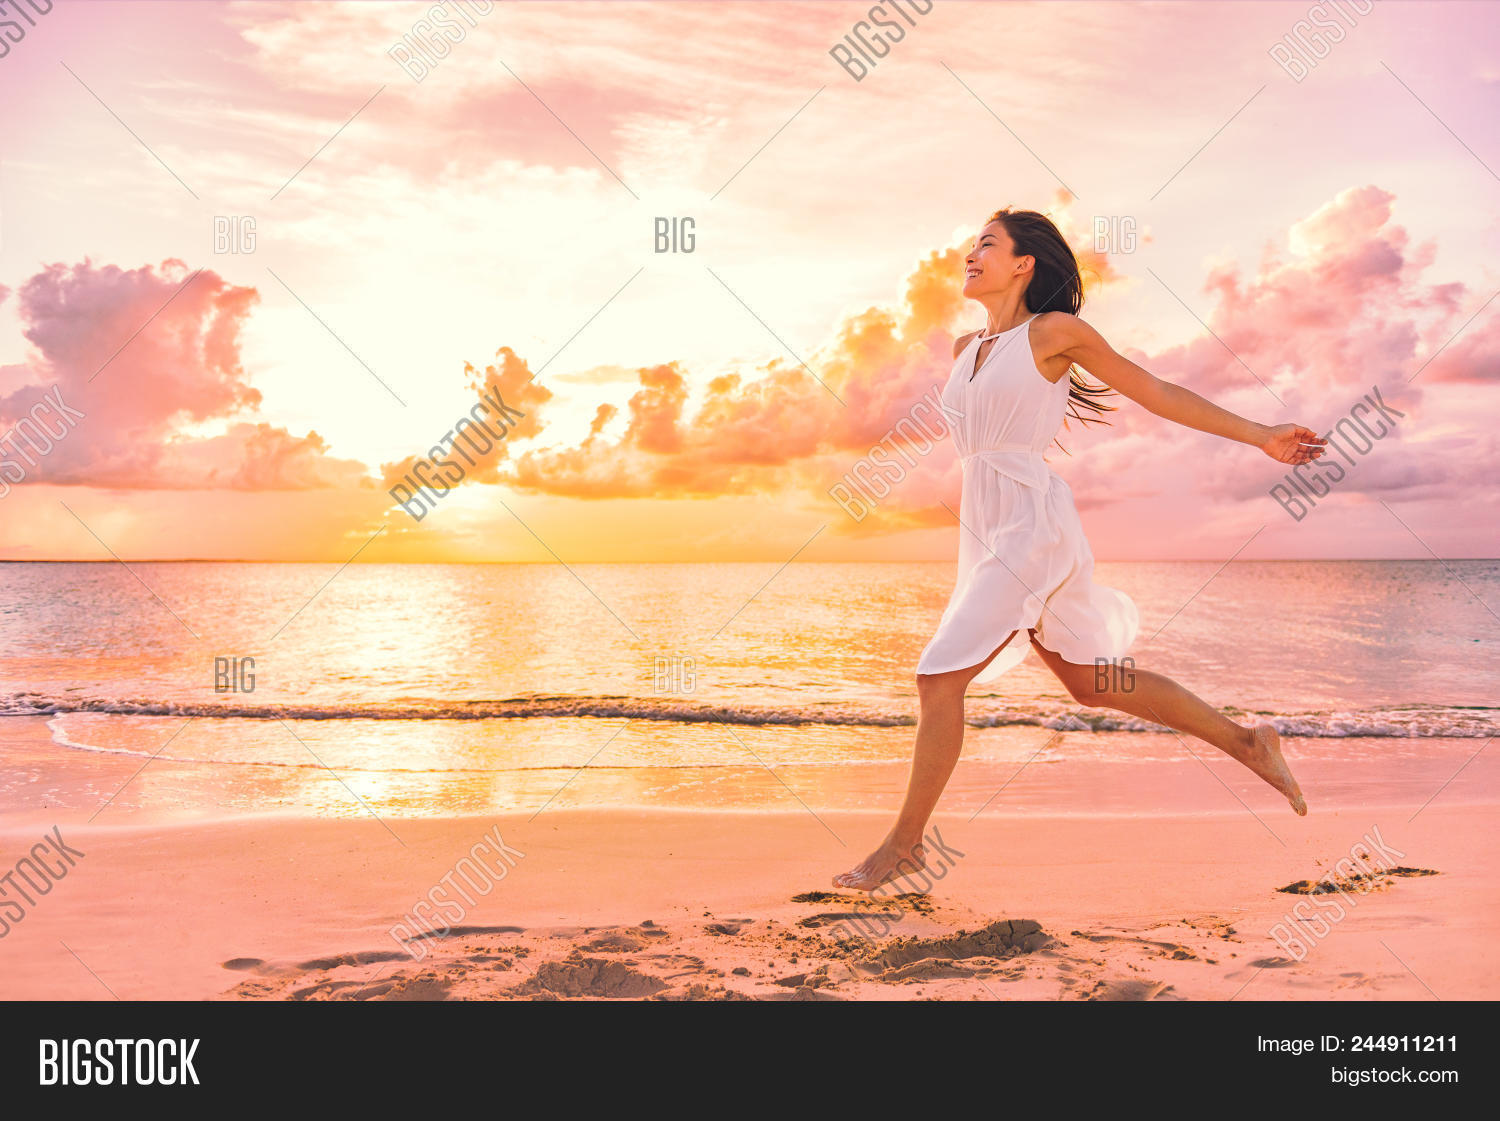 asian,barefoot,beach,being,bliss,blissful,body,carefree,clouds,colorful,dance,dancing,dress,feeling,feet,free,freedom,getaway,girl,happiness,happy,health,healthy,holiday,holidays,joy,jumping,legs,lifestyle,luxury,mind,mindfulness,ocean,paradise,peaceful,people,person,serenity,stress,sun,sunset,travel,vacation,vacations,water,well,well-being,wellness,woman,women